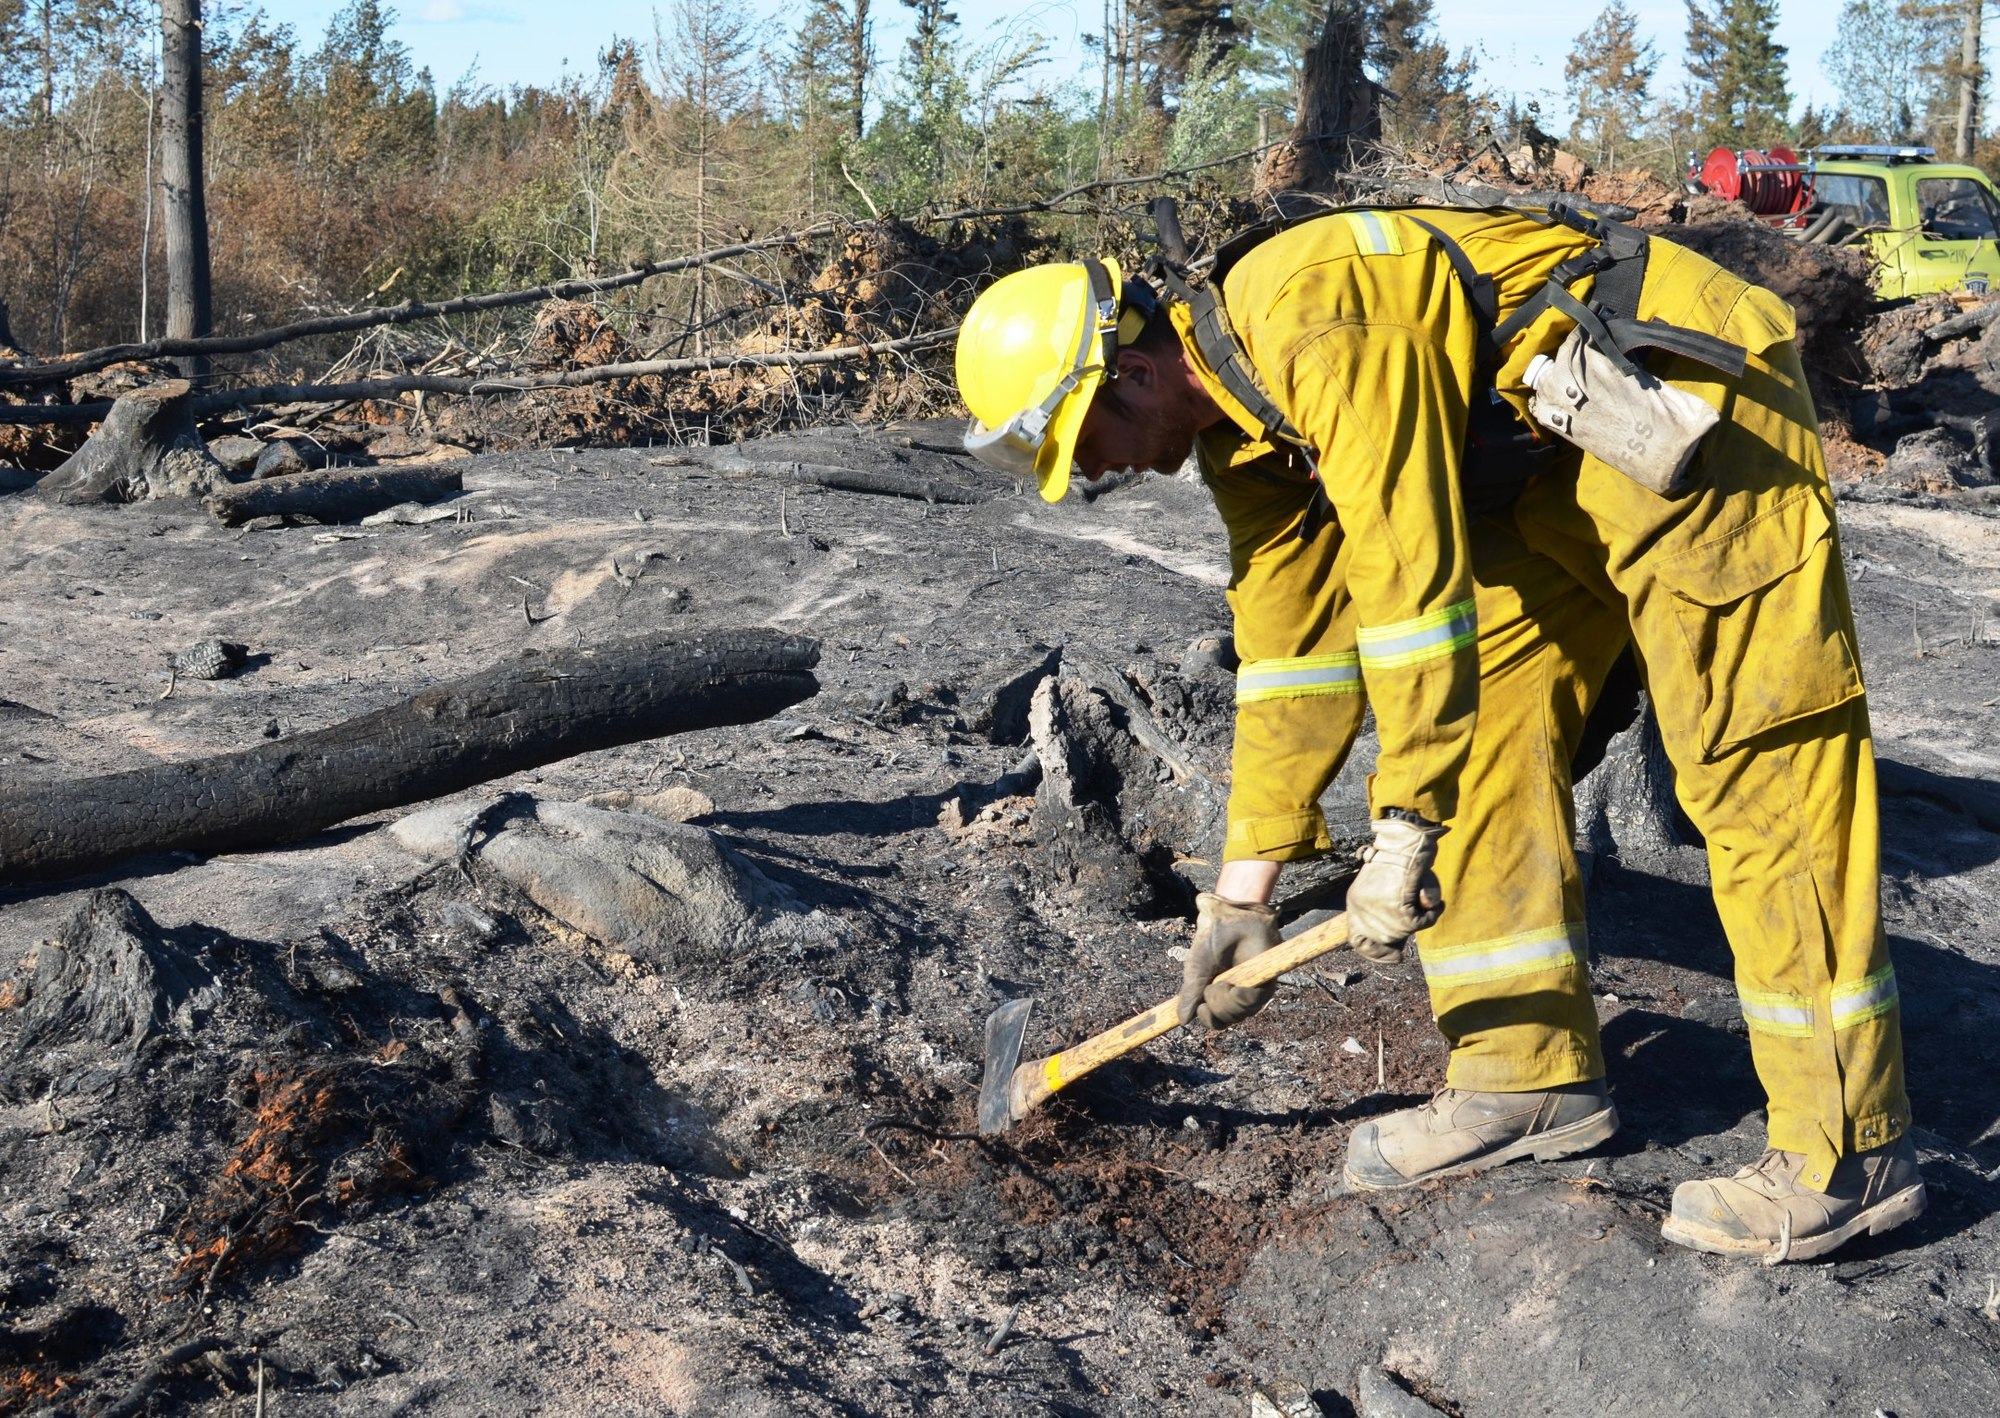 A fireman works on putting out a hot spot on the Marquette County Road 601 fire. The fireman was among several sent to Manitoba this past summer.